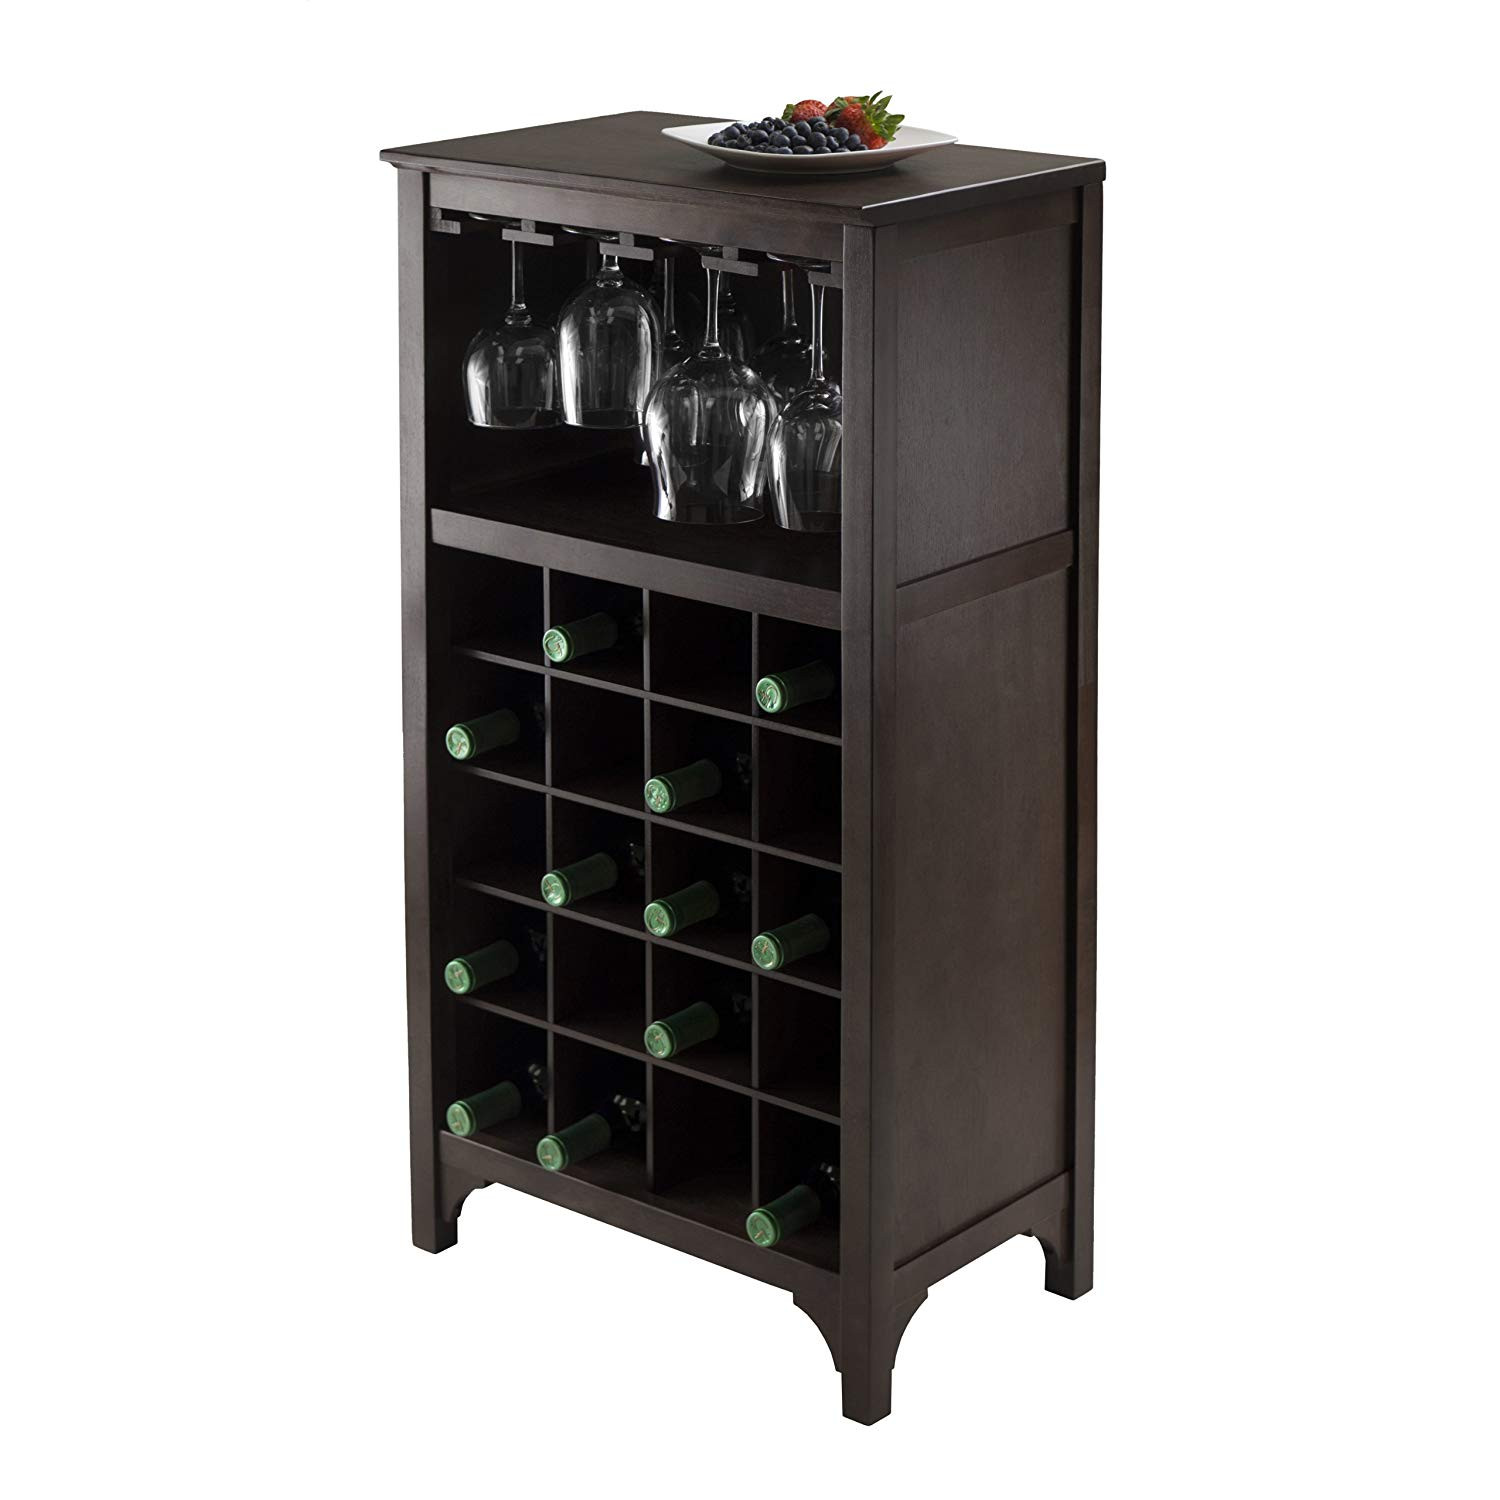 Best ideas about Cabinet With Wine Rack . Save or Pin Wine Storage Cabinet Dark Wood Bar 12 Glass 20 Bottles Now.